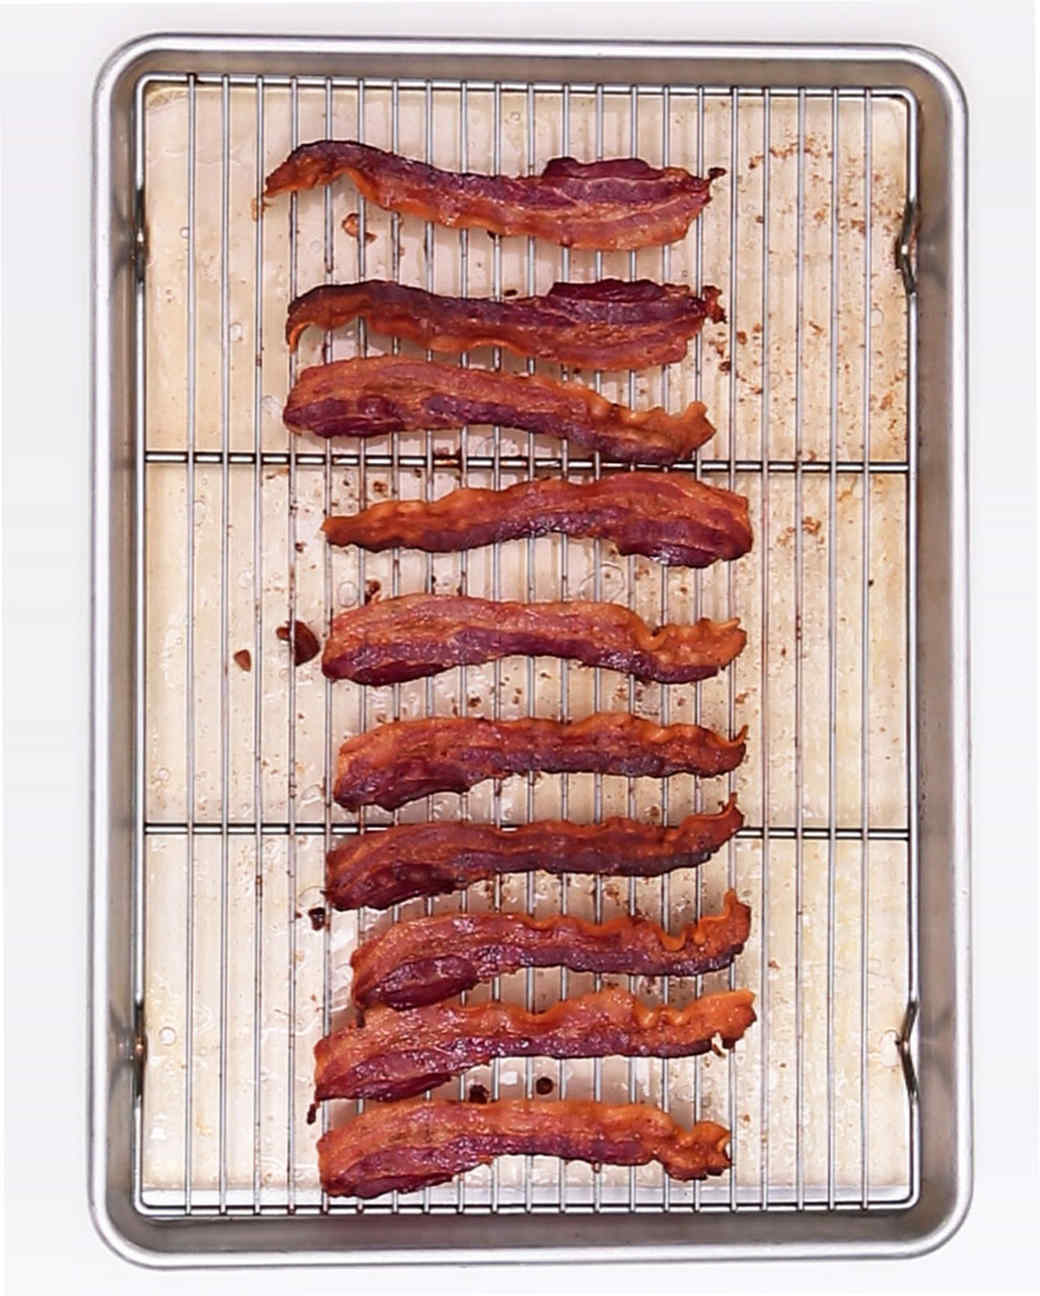 the_method_to_cooking_better_bacon.jpg